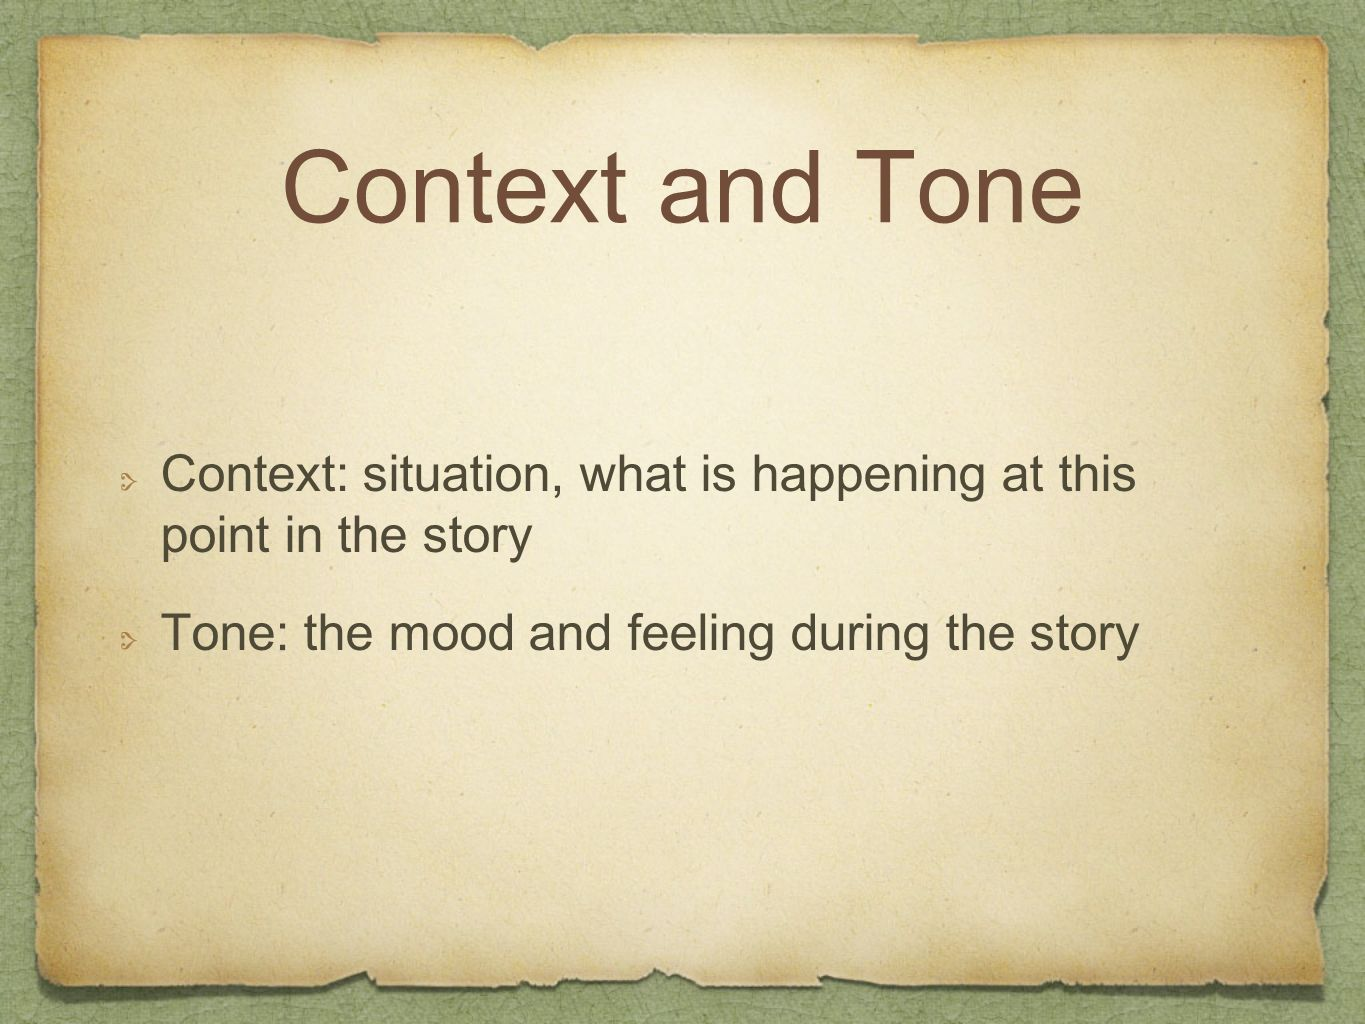 Context and Tone Context: situation, what is happening at this point in the story Tone: the mood and feeling during the story